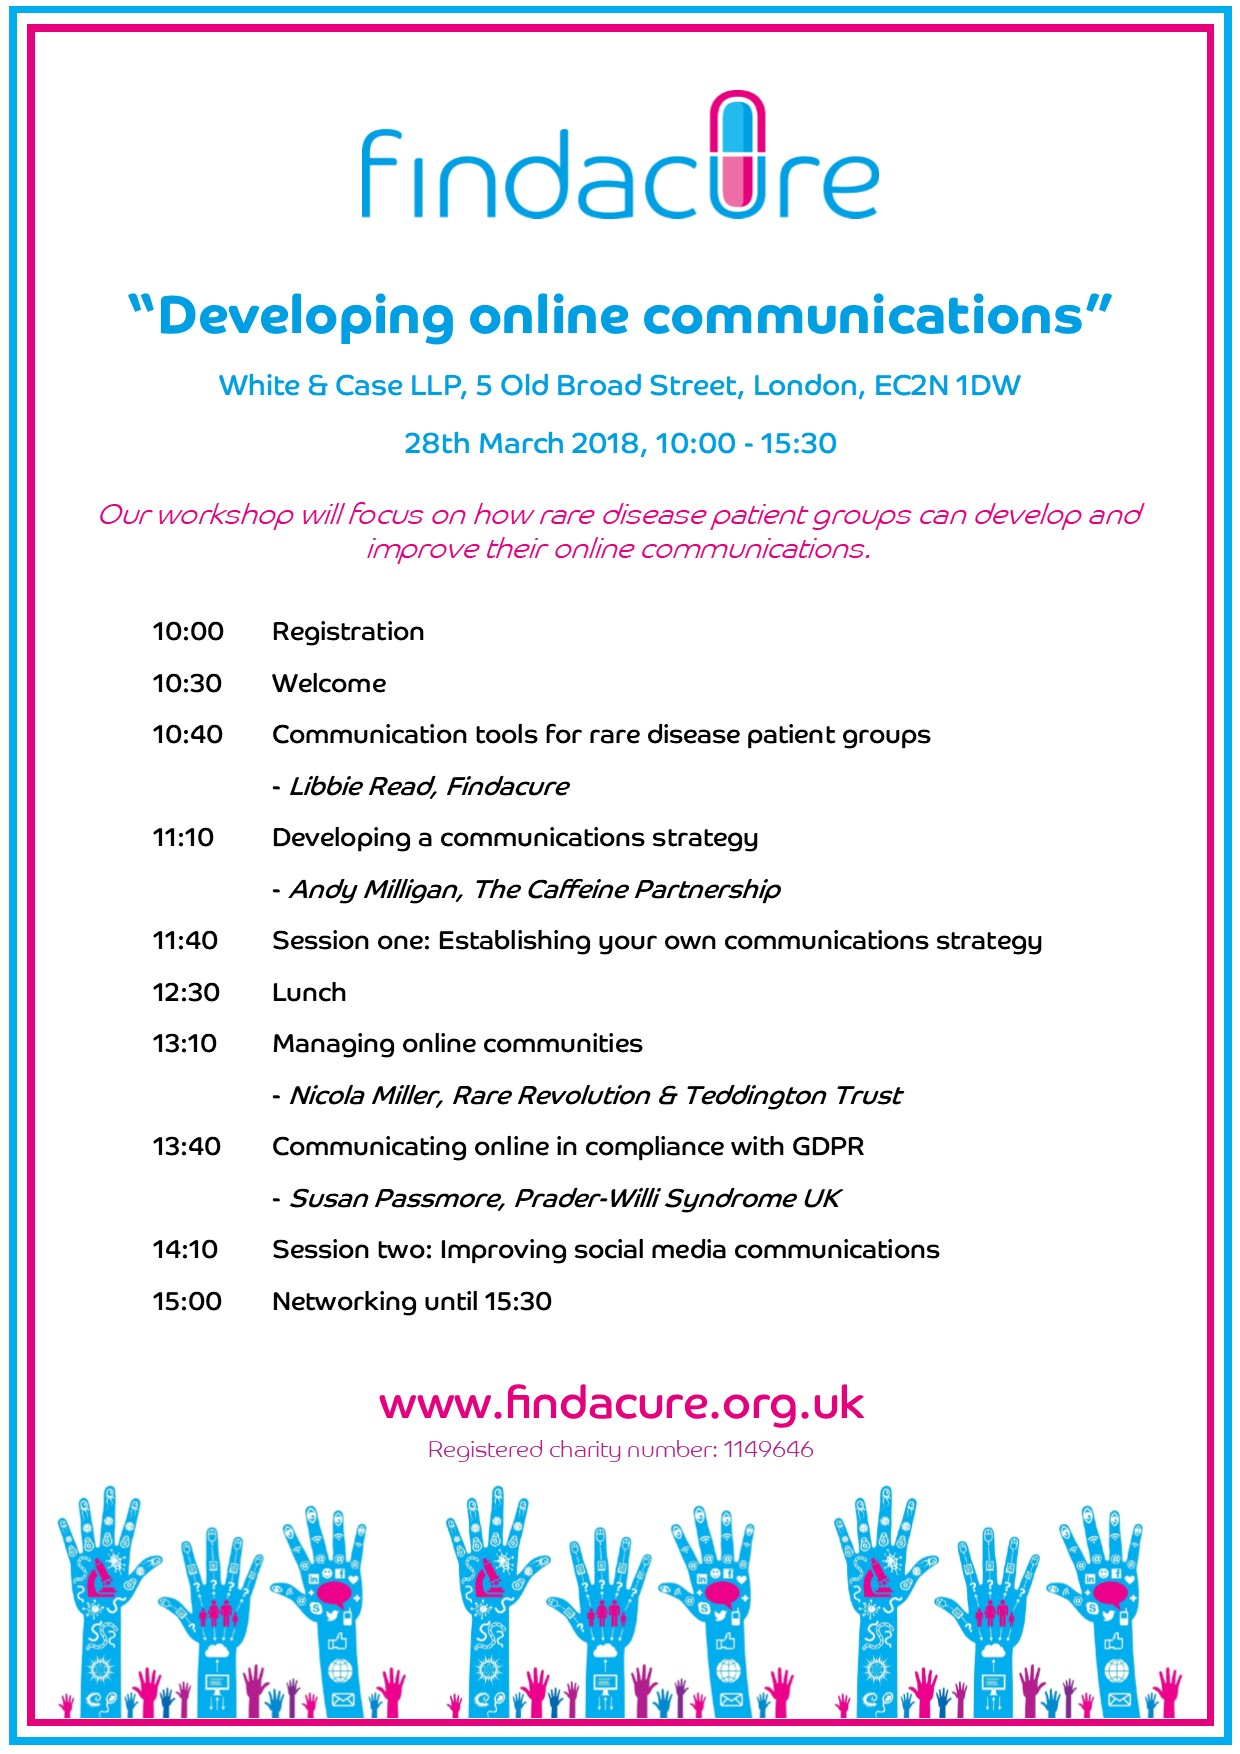 Schedule for Developing Online Communications Workshop